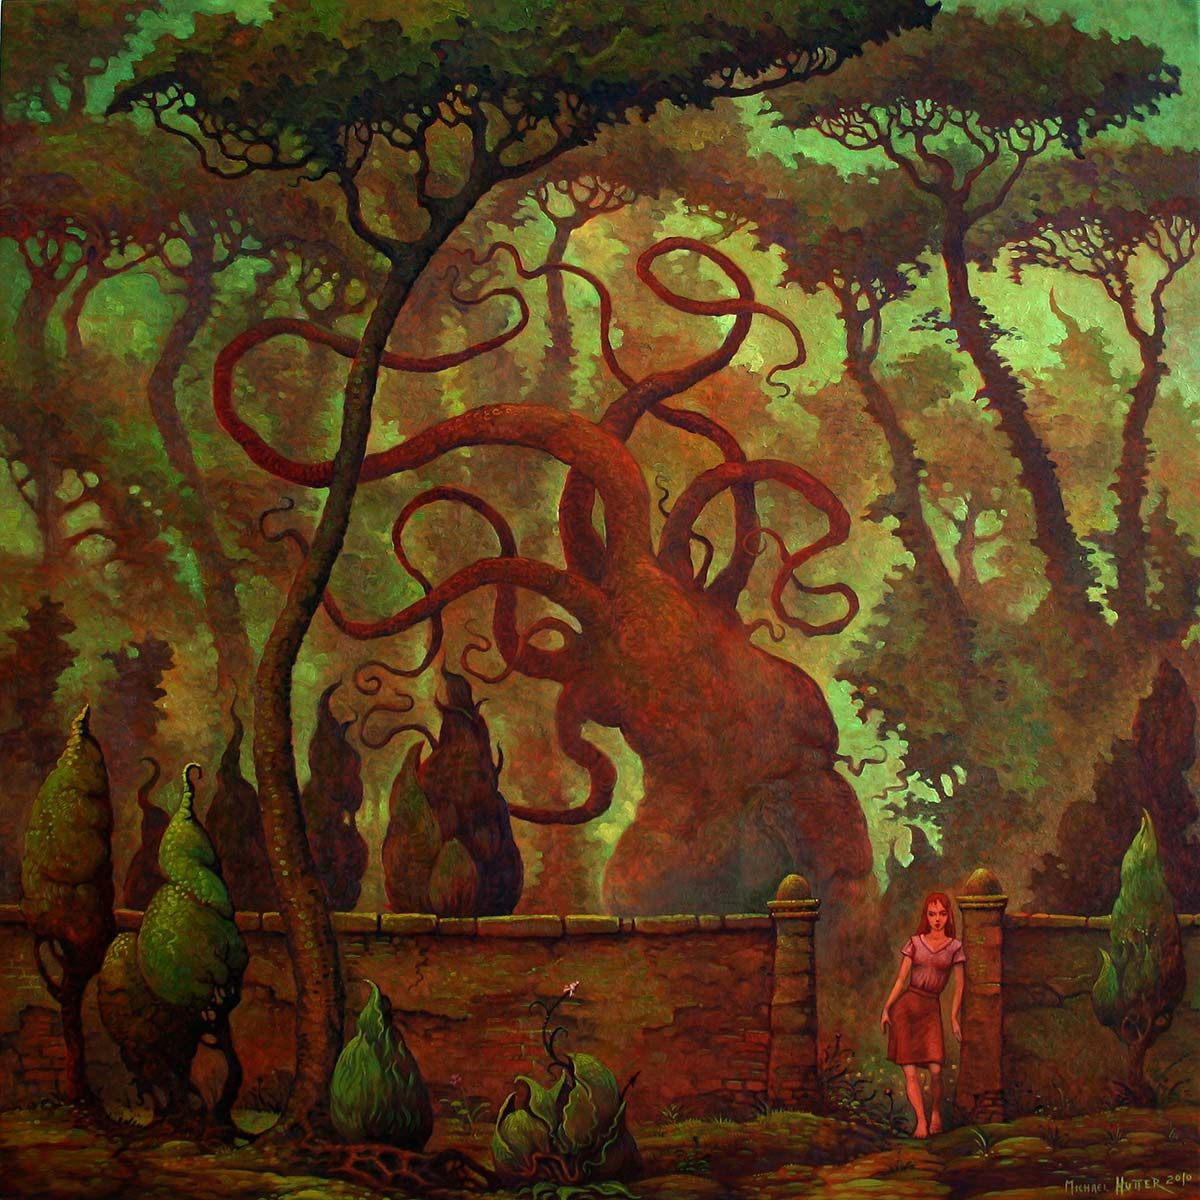 Monster World Garten Alter Garten Old Garden By Michael Hutter Where